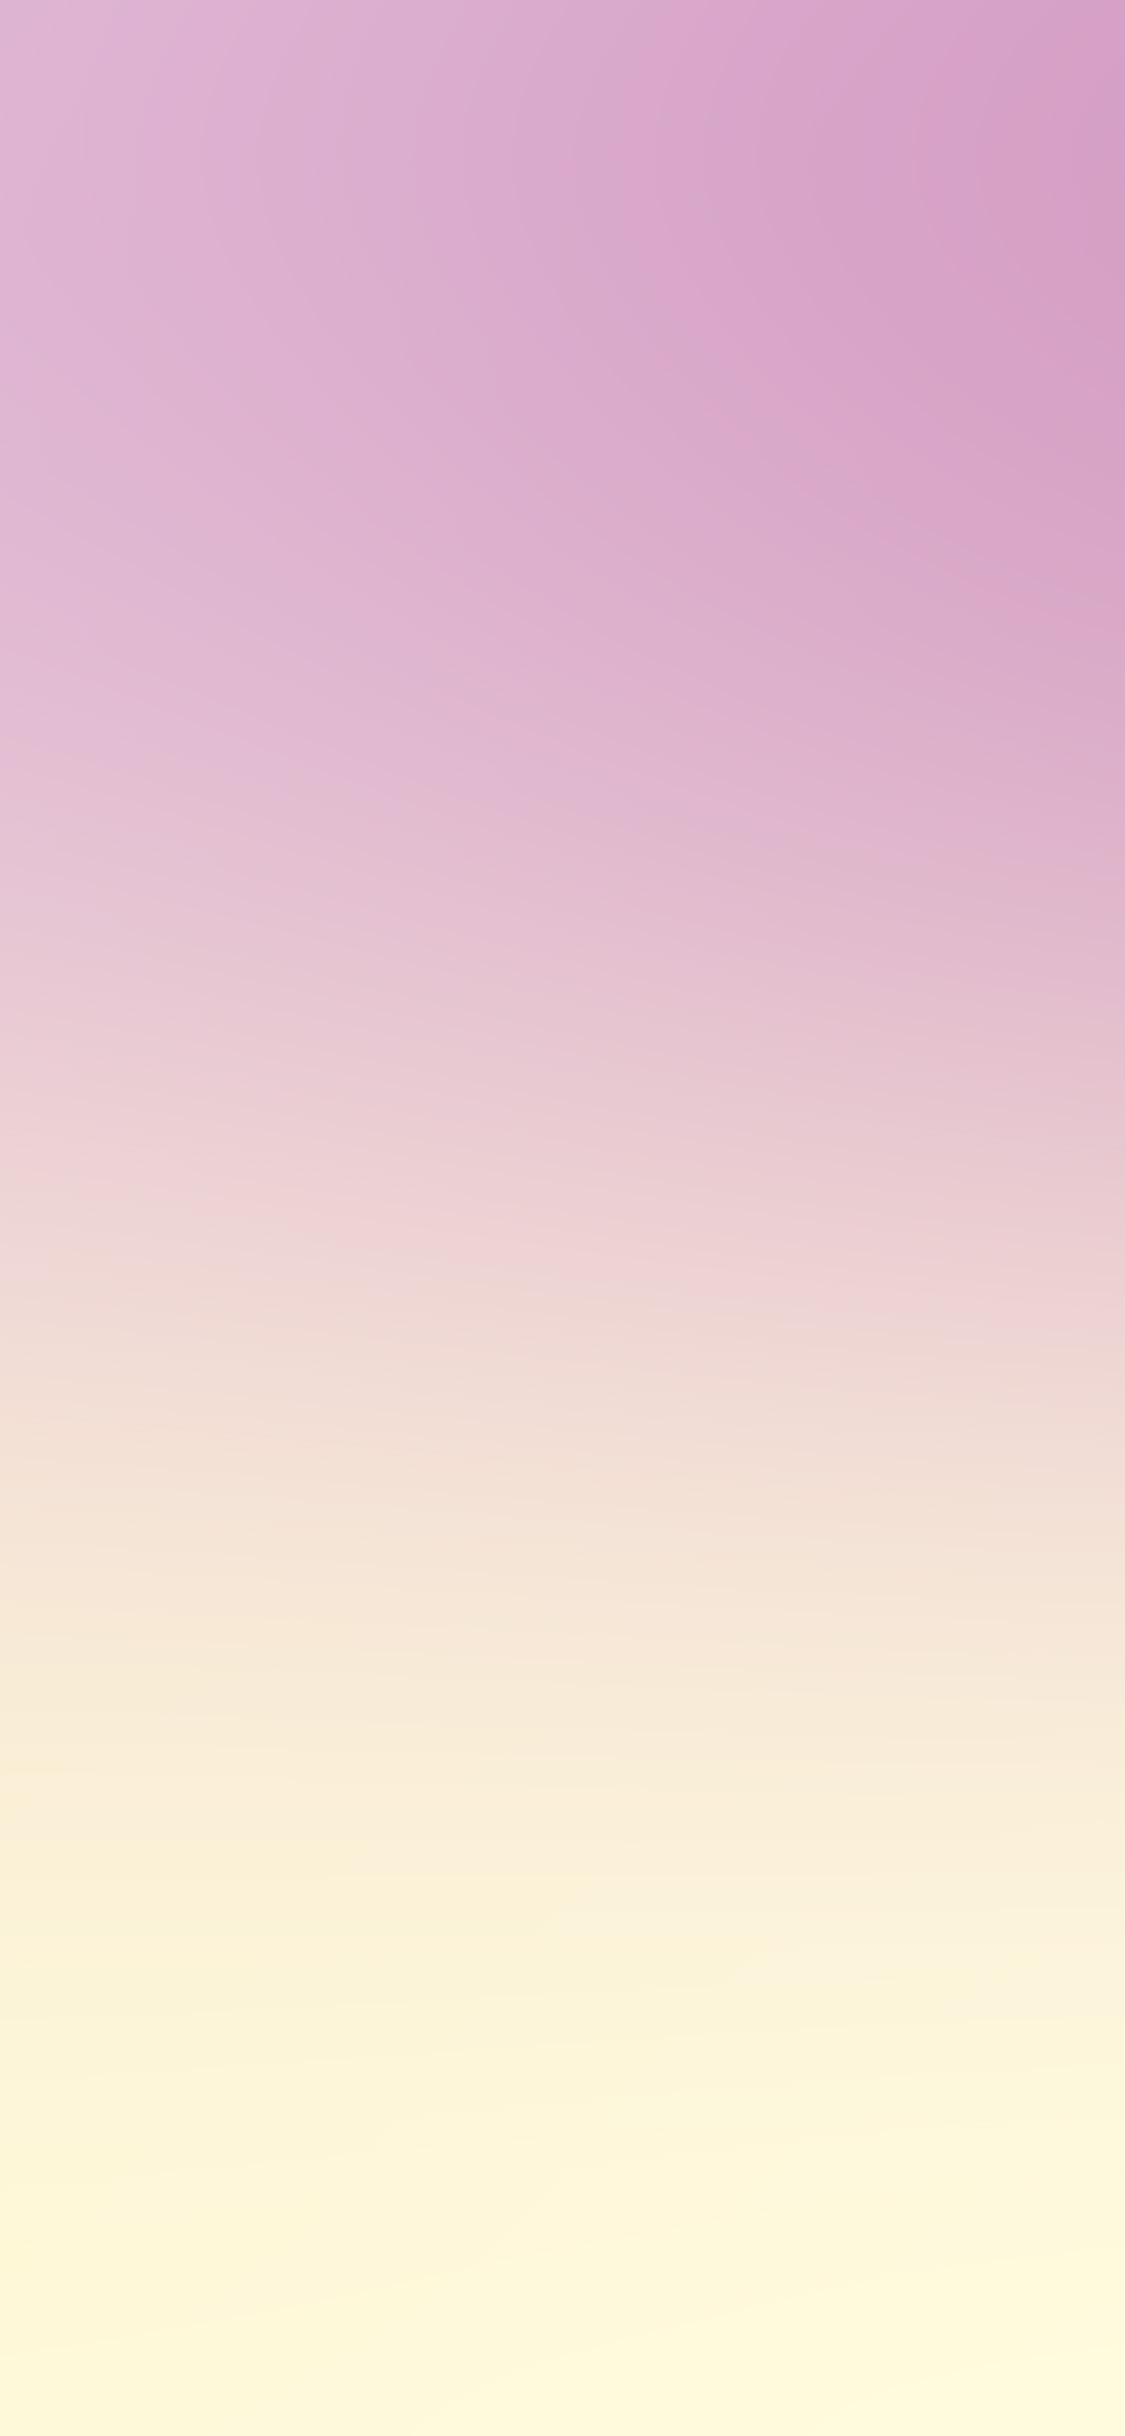 iPhonexpapers.com-Apple-iPhone-wallpaper-sn23-pastel-soft-red-pink-blur-gradation